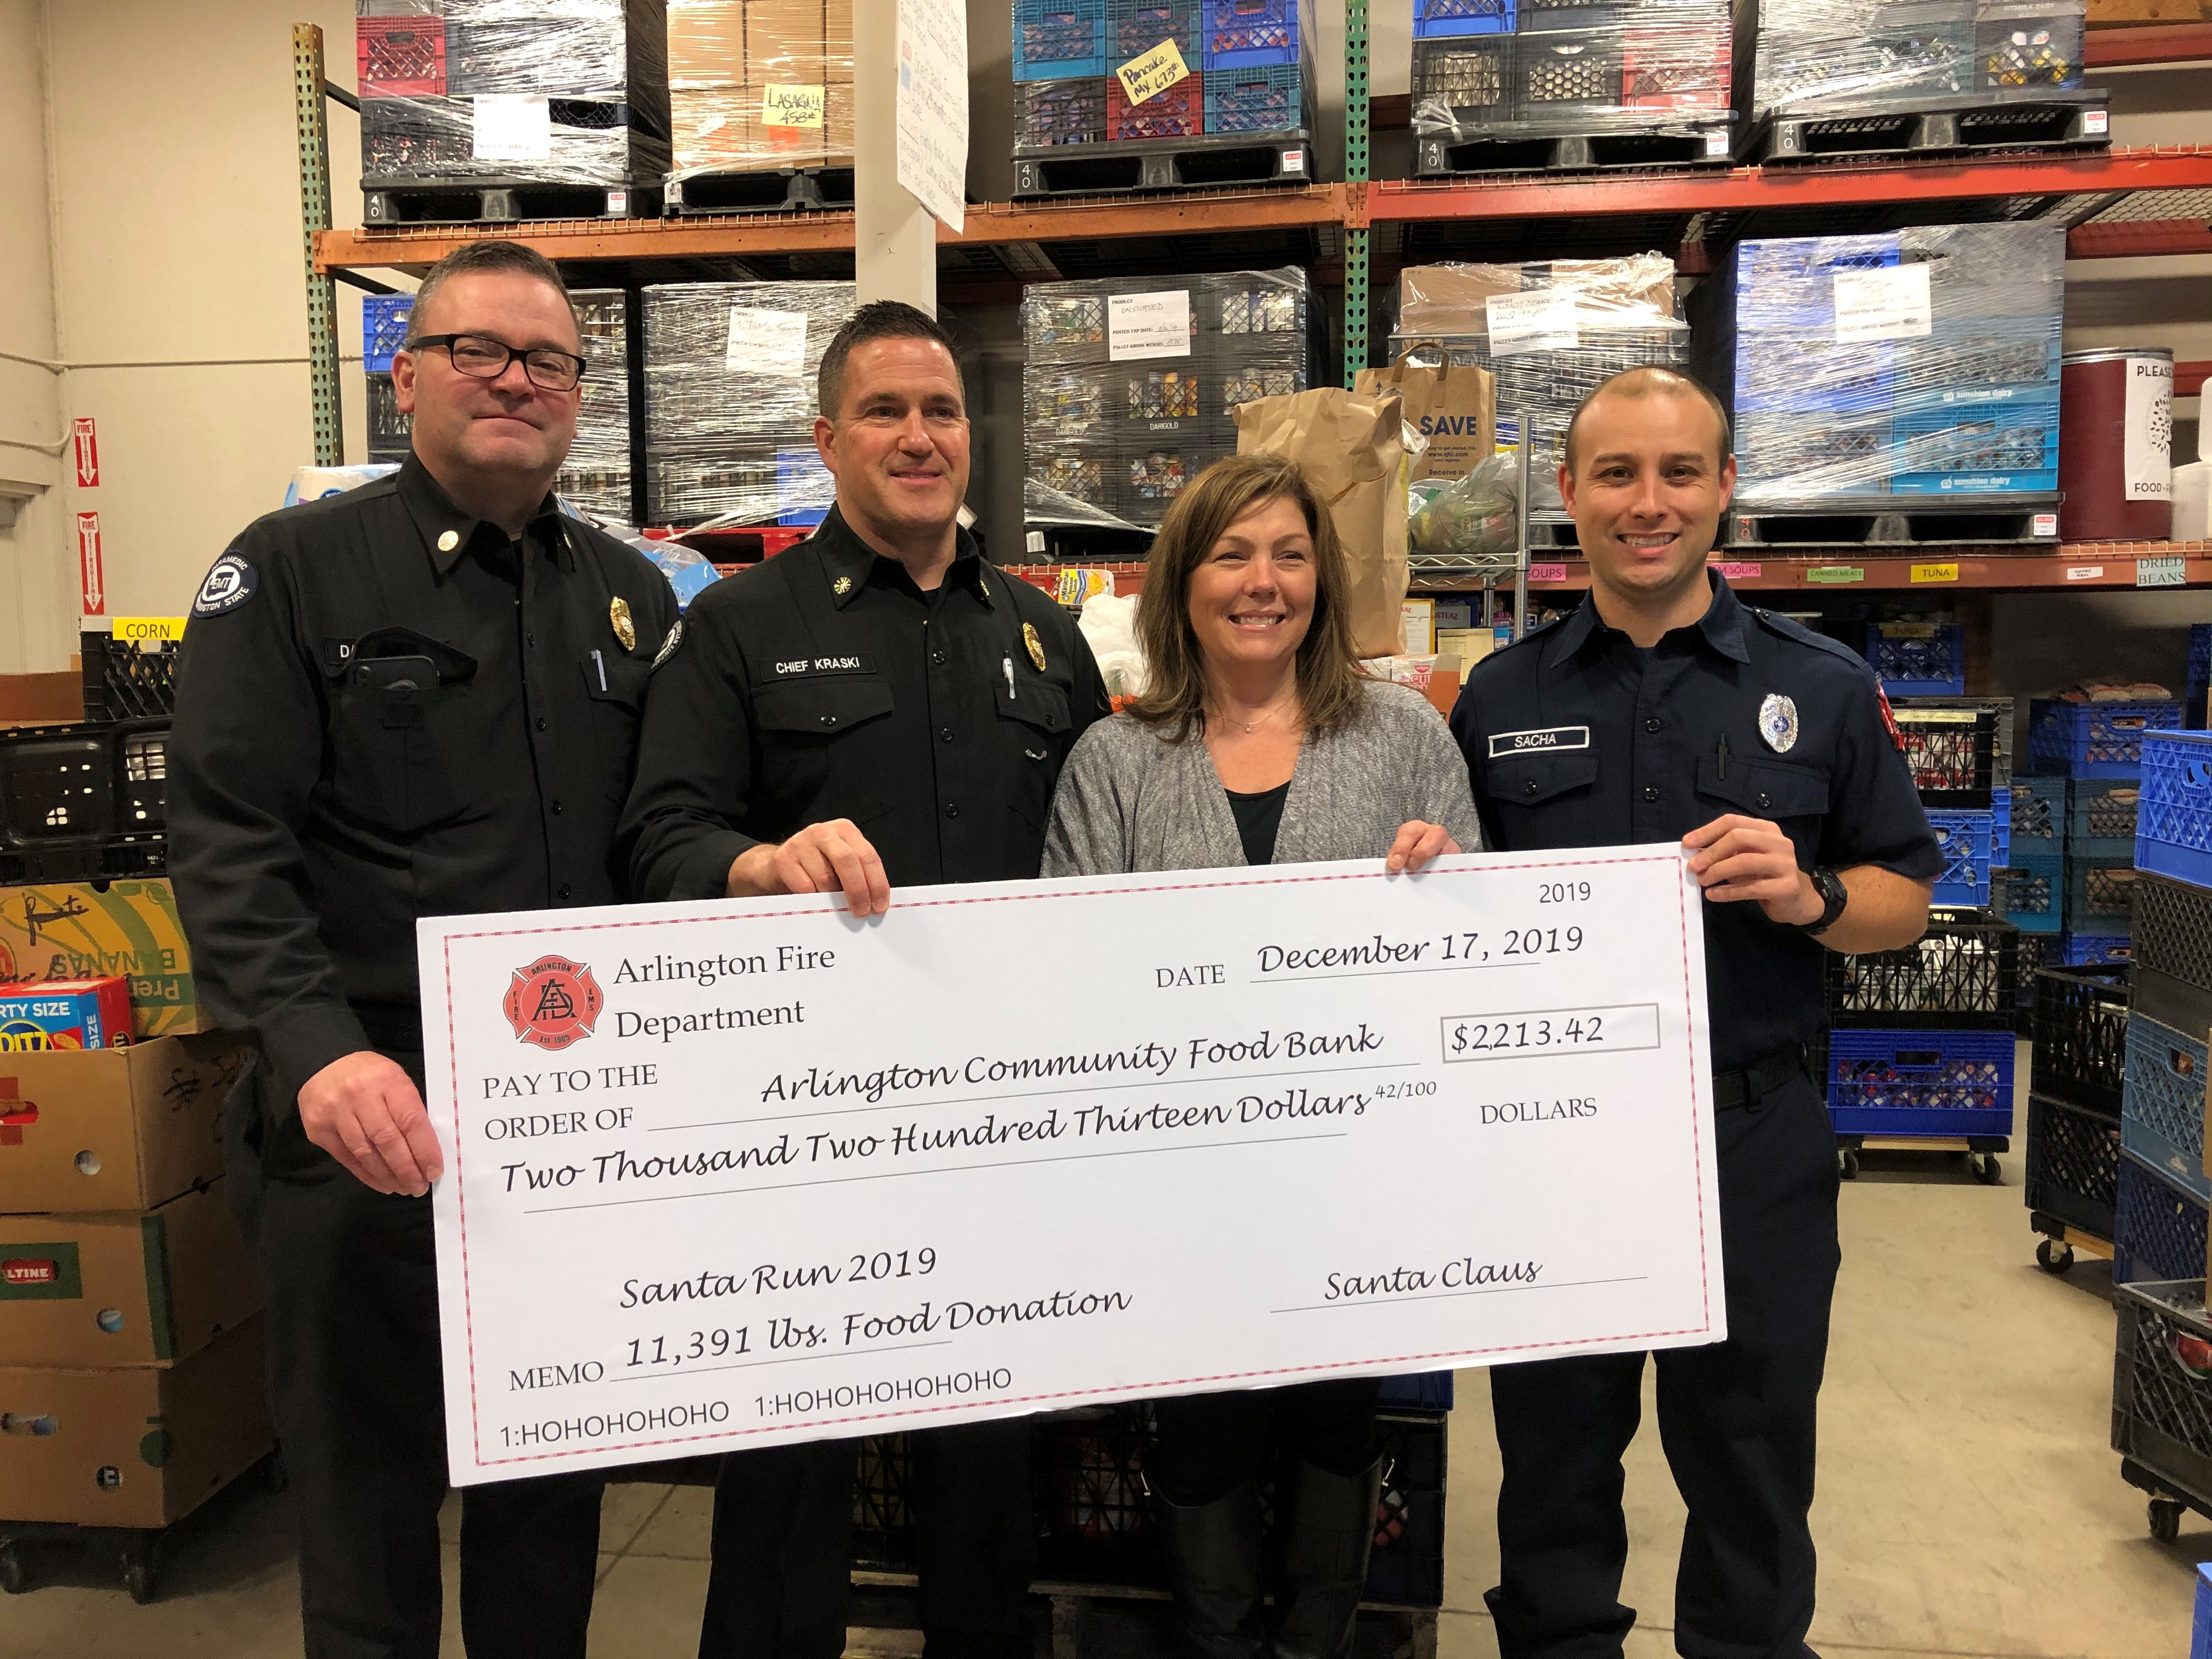 Arlington Fire Department staff present large check to Arlington Community Food Bank for 2019 Santa